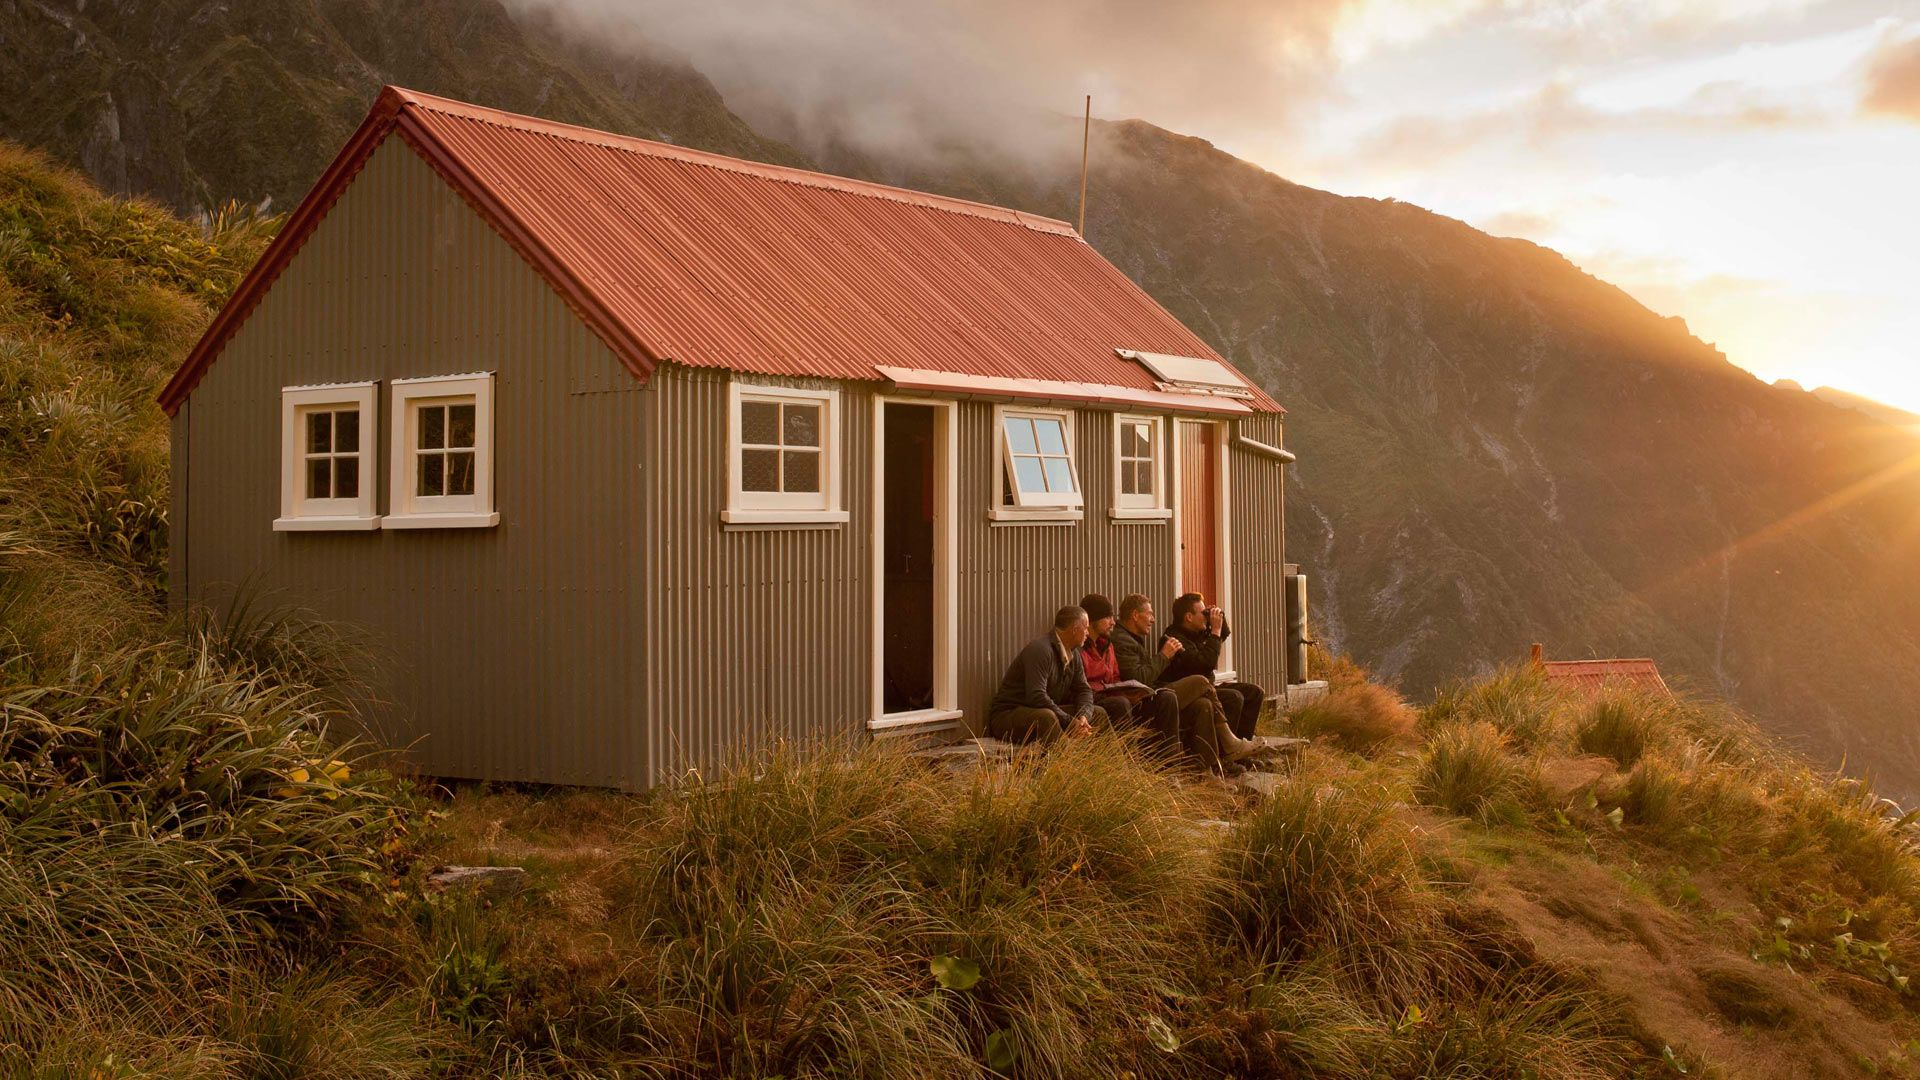 there are a range of accommodation options in conservation places